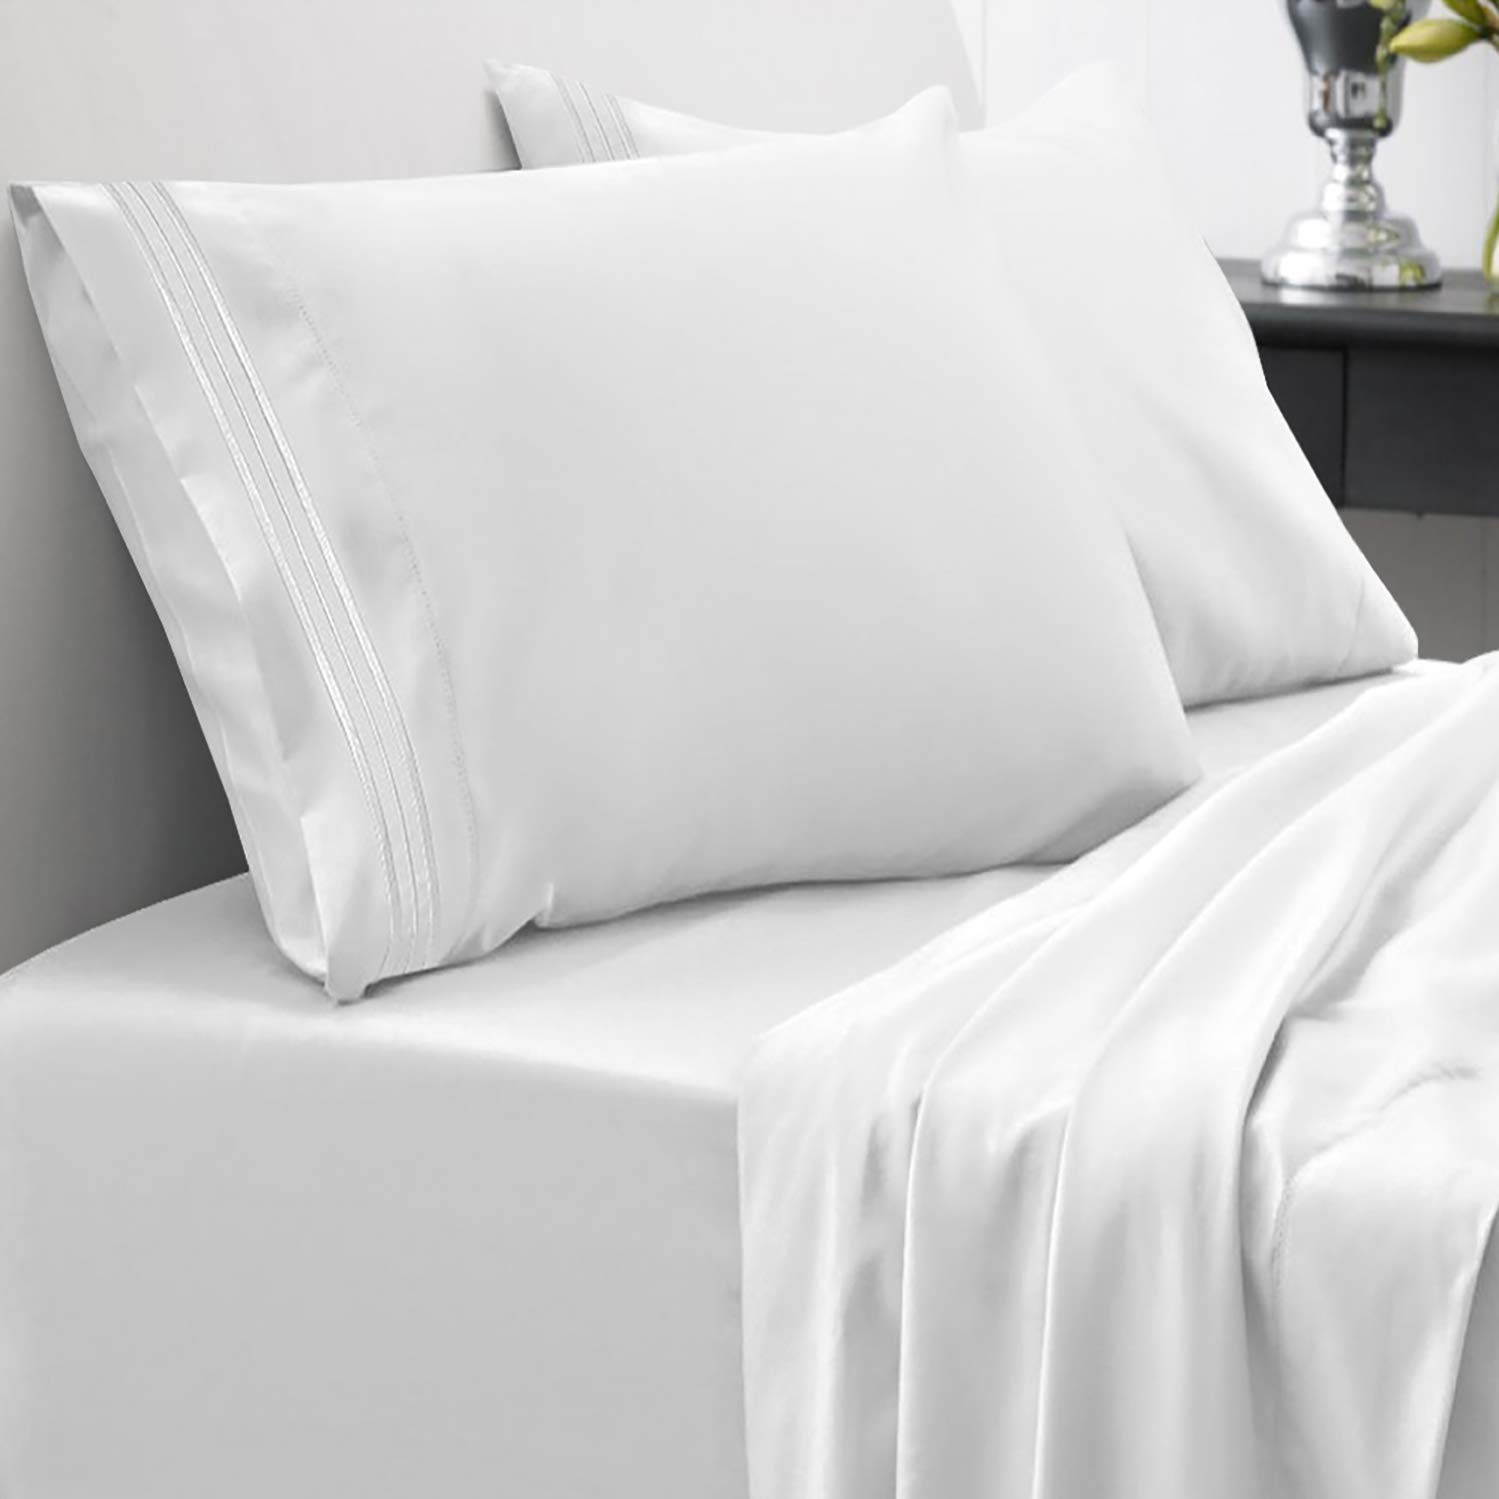 1800 Thread Count Sheet Set – Soft Egyptian Quality Brushed Microfiber Hypoallergenic Sheets – Luxury Bedding Set with Flat Sheet, Fitted Sheet, 2 Pillow Cases, California King, White